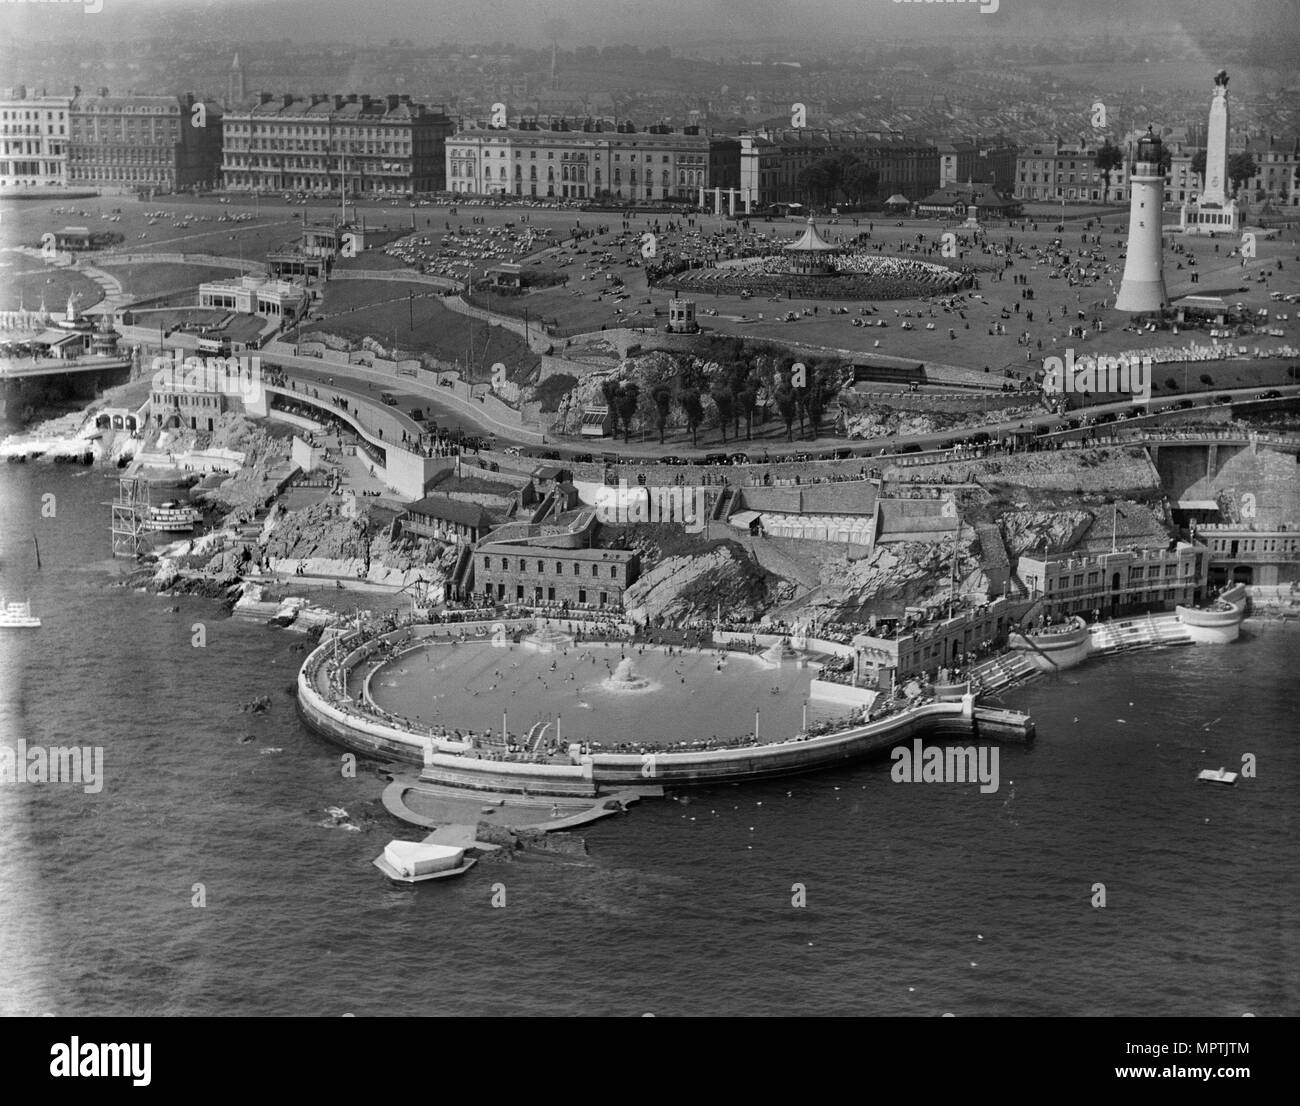 Plymouth Hoe, Devon, 1937. Artist: Aeropictorial Ltd. - Stock Image